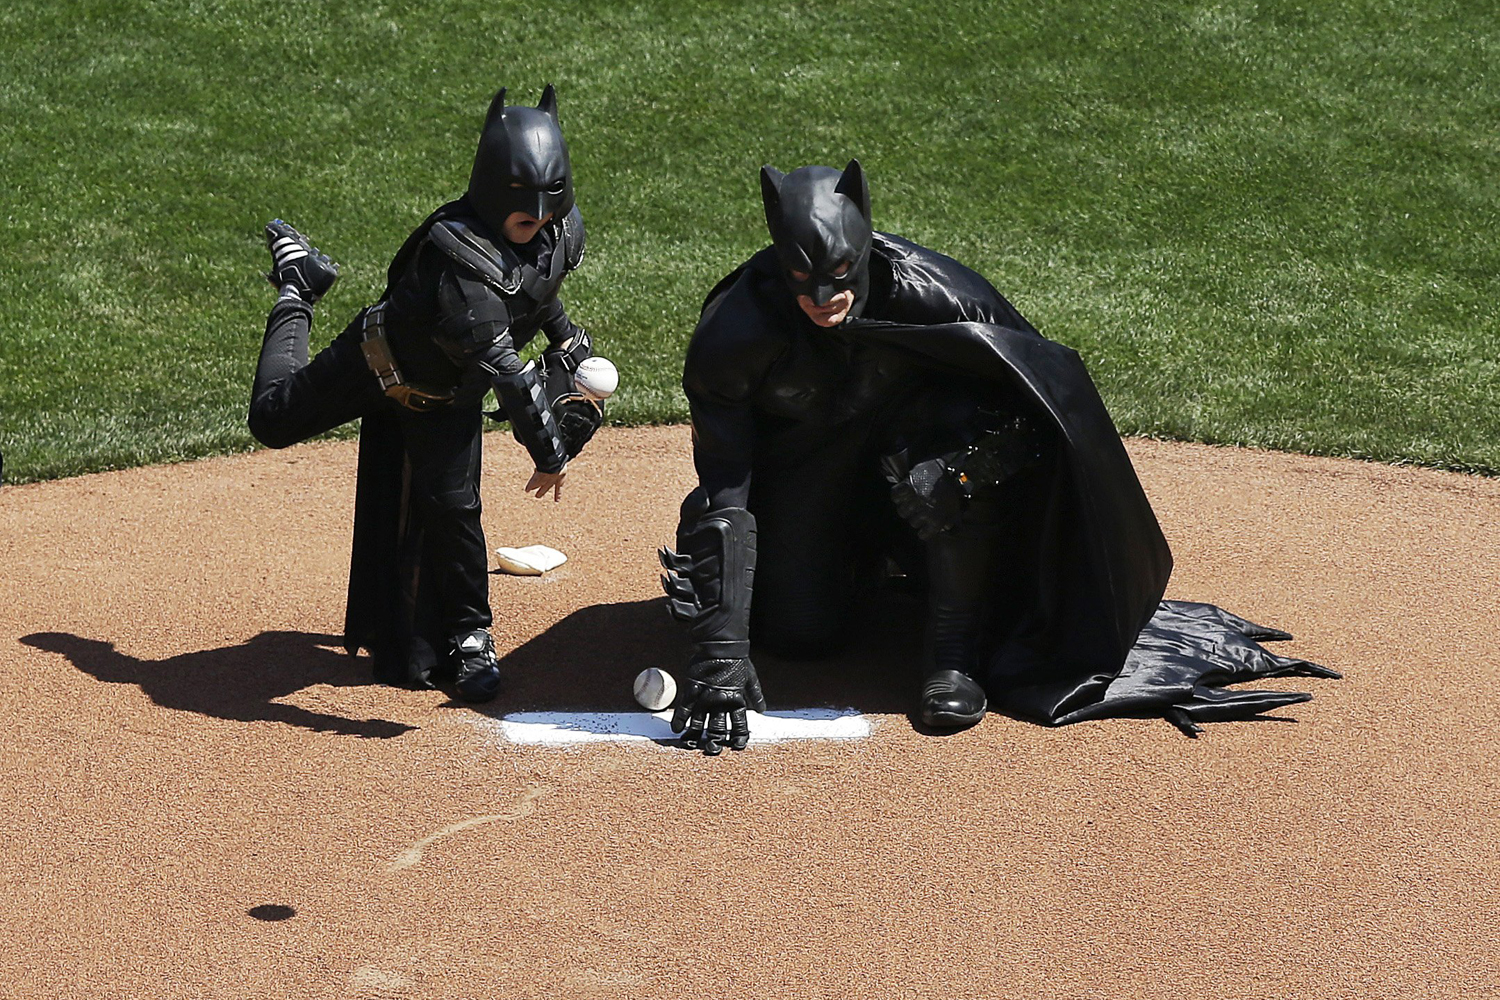 Apr. 8, 2014. Miles Scott, dressed as Batkid, left, throws the ceremonial first pitch next to Batman before an opening day baseball game between the San Francisco Giants and the Arizona Diamondbacks in San Francisco.